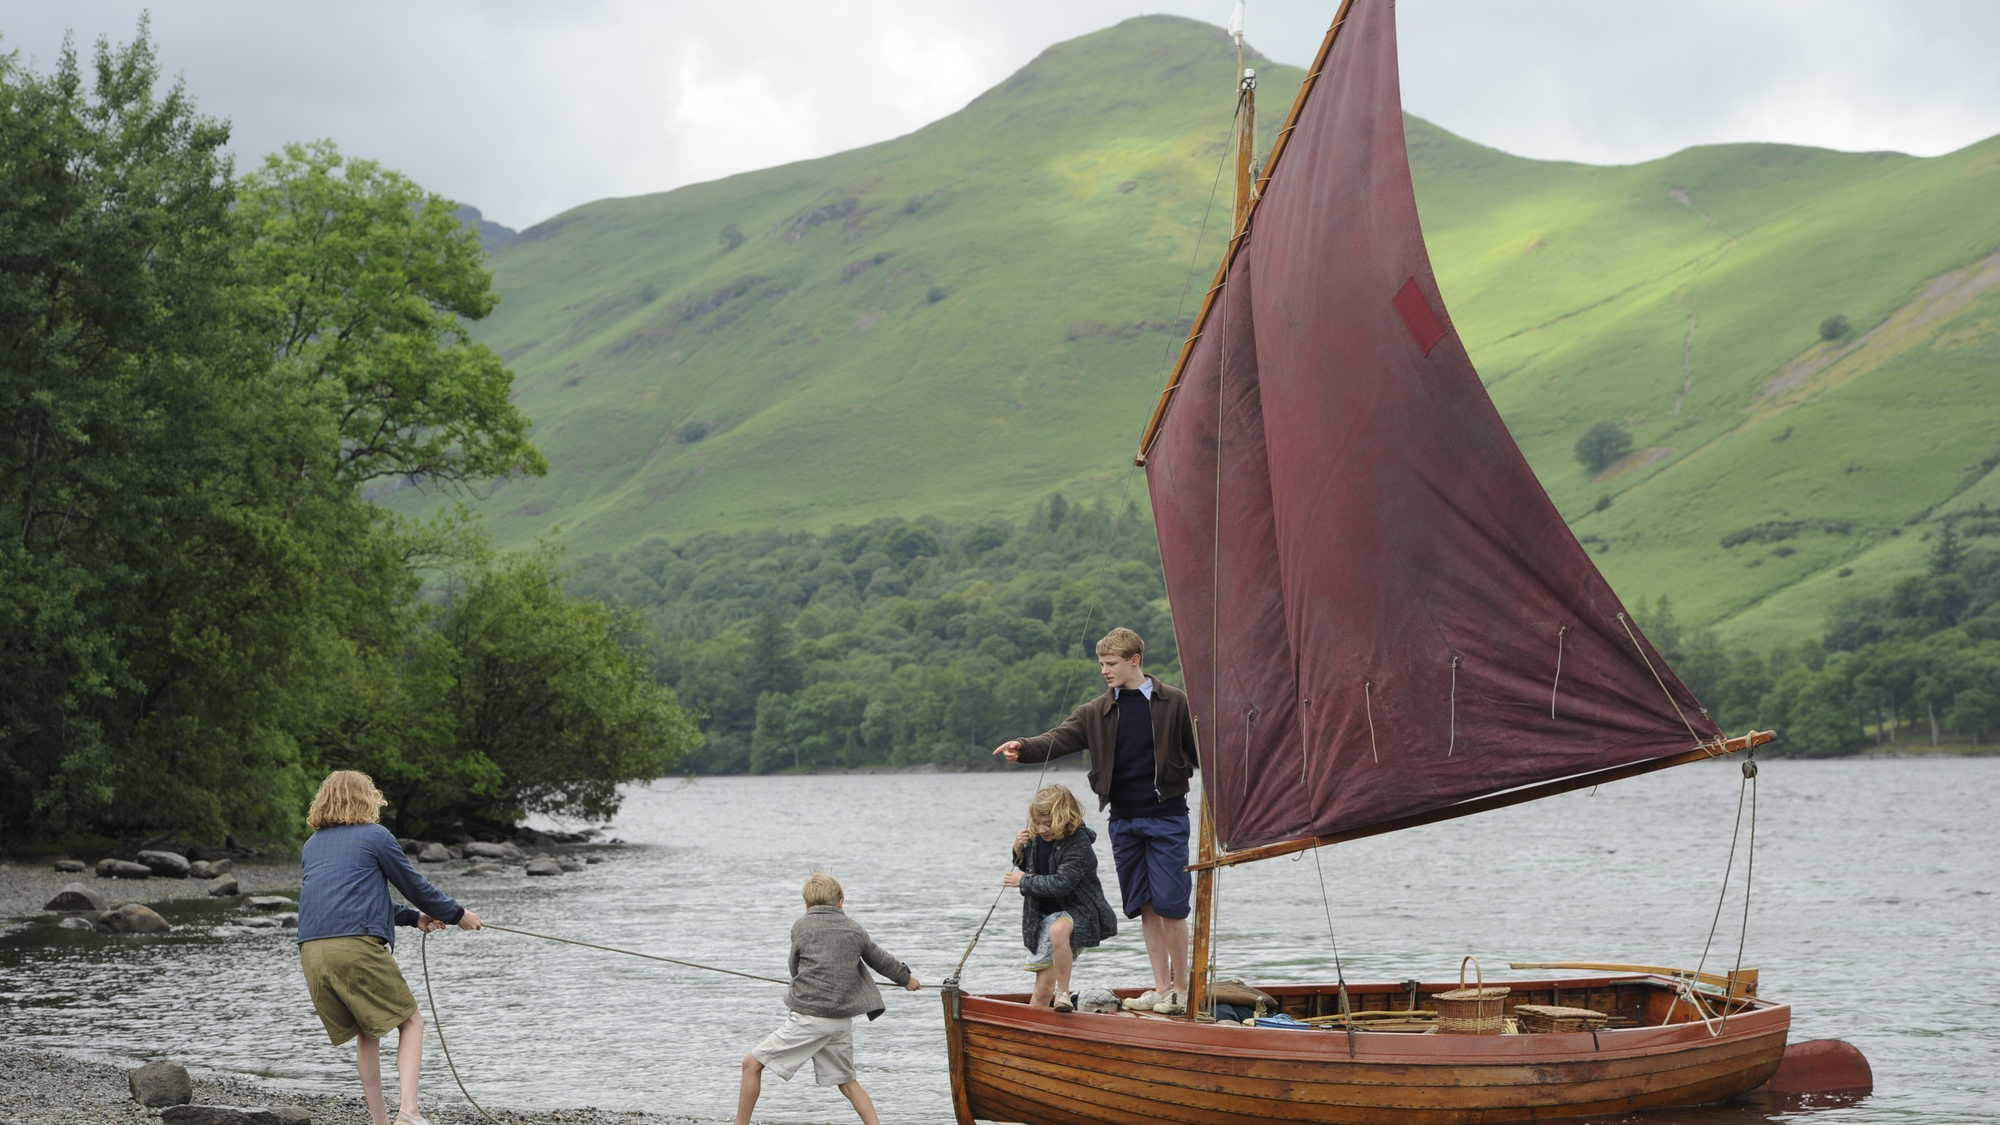 Swallows and Amazons (image 4)